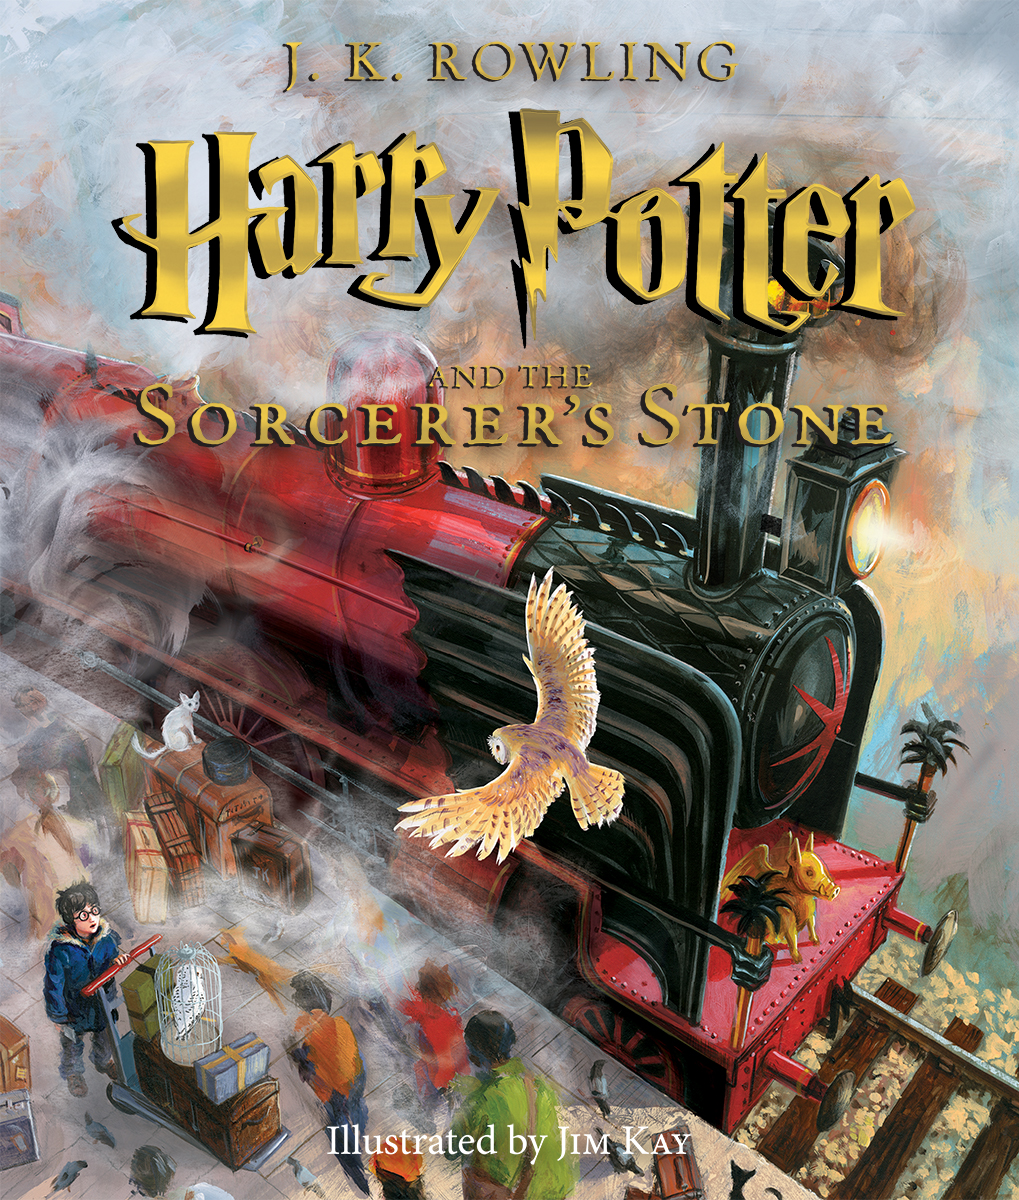 Descargar Libro Harry Potter Y La Piedra Filosofal Harry Potter And The Sorcerer S Stone Illustrated Edition By Jim